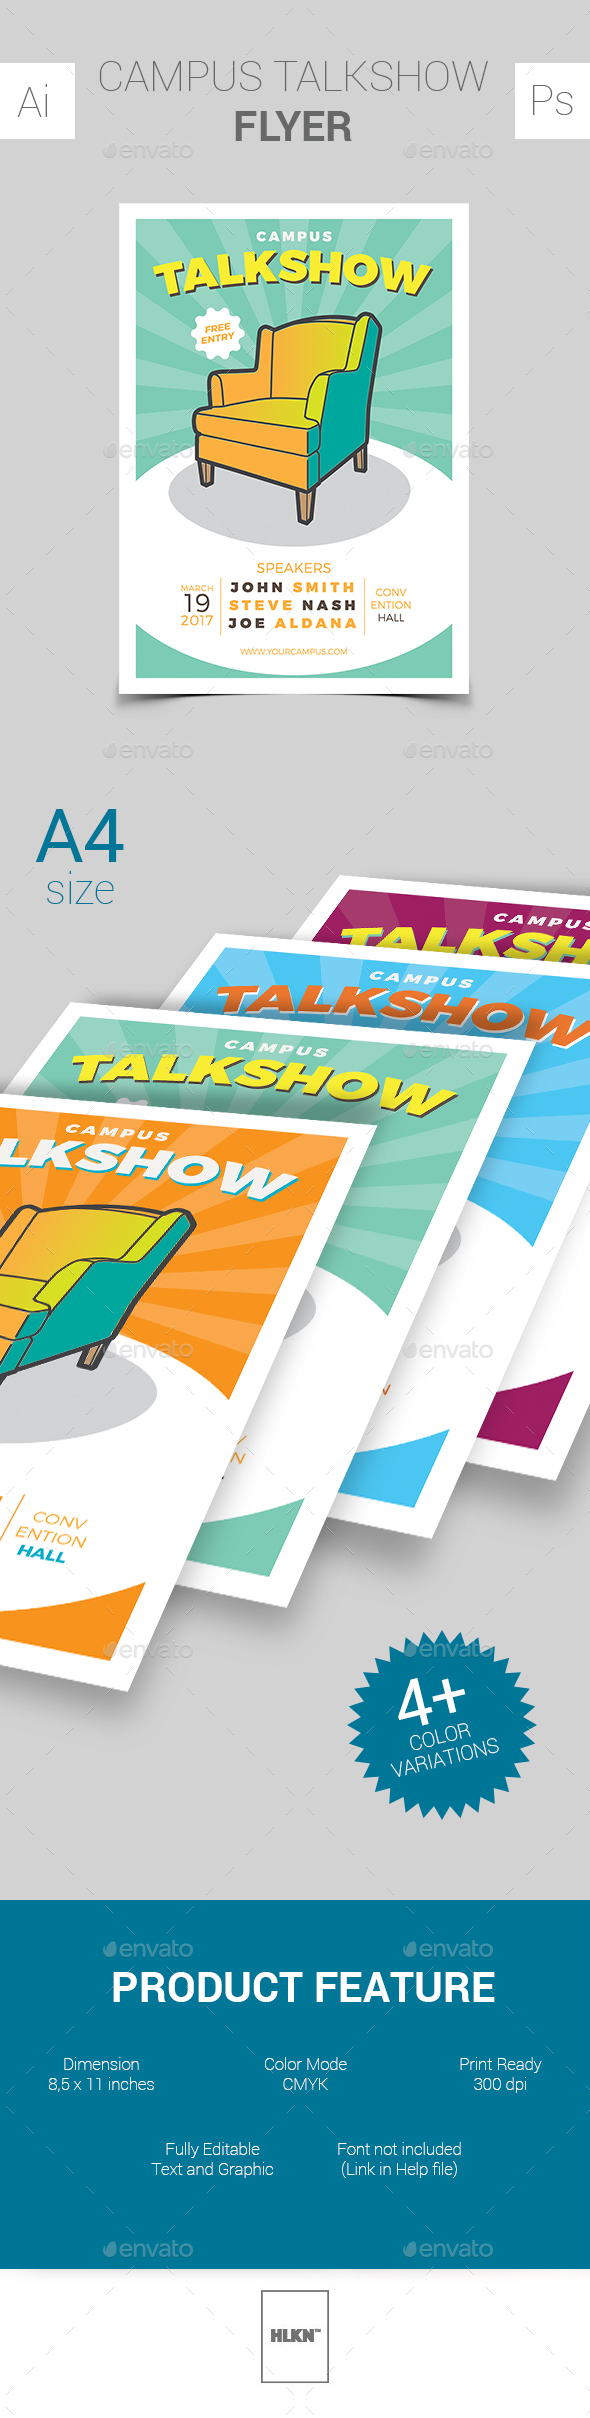 Campus Talkshow Flyer - Events Flyers